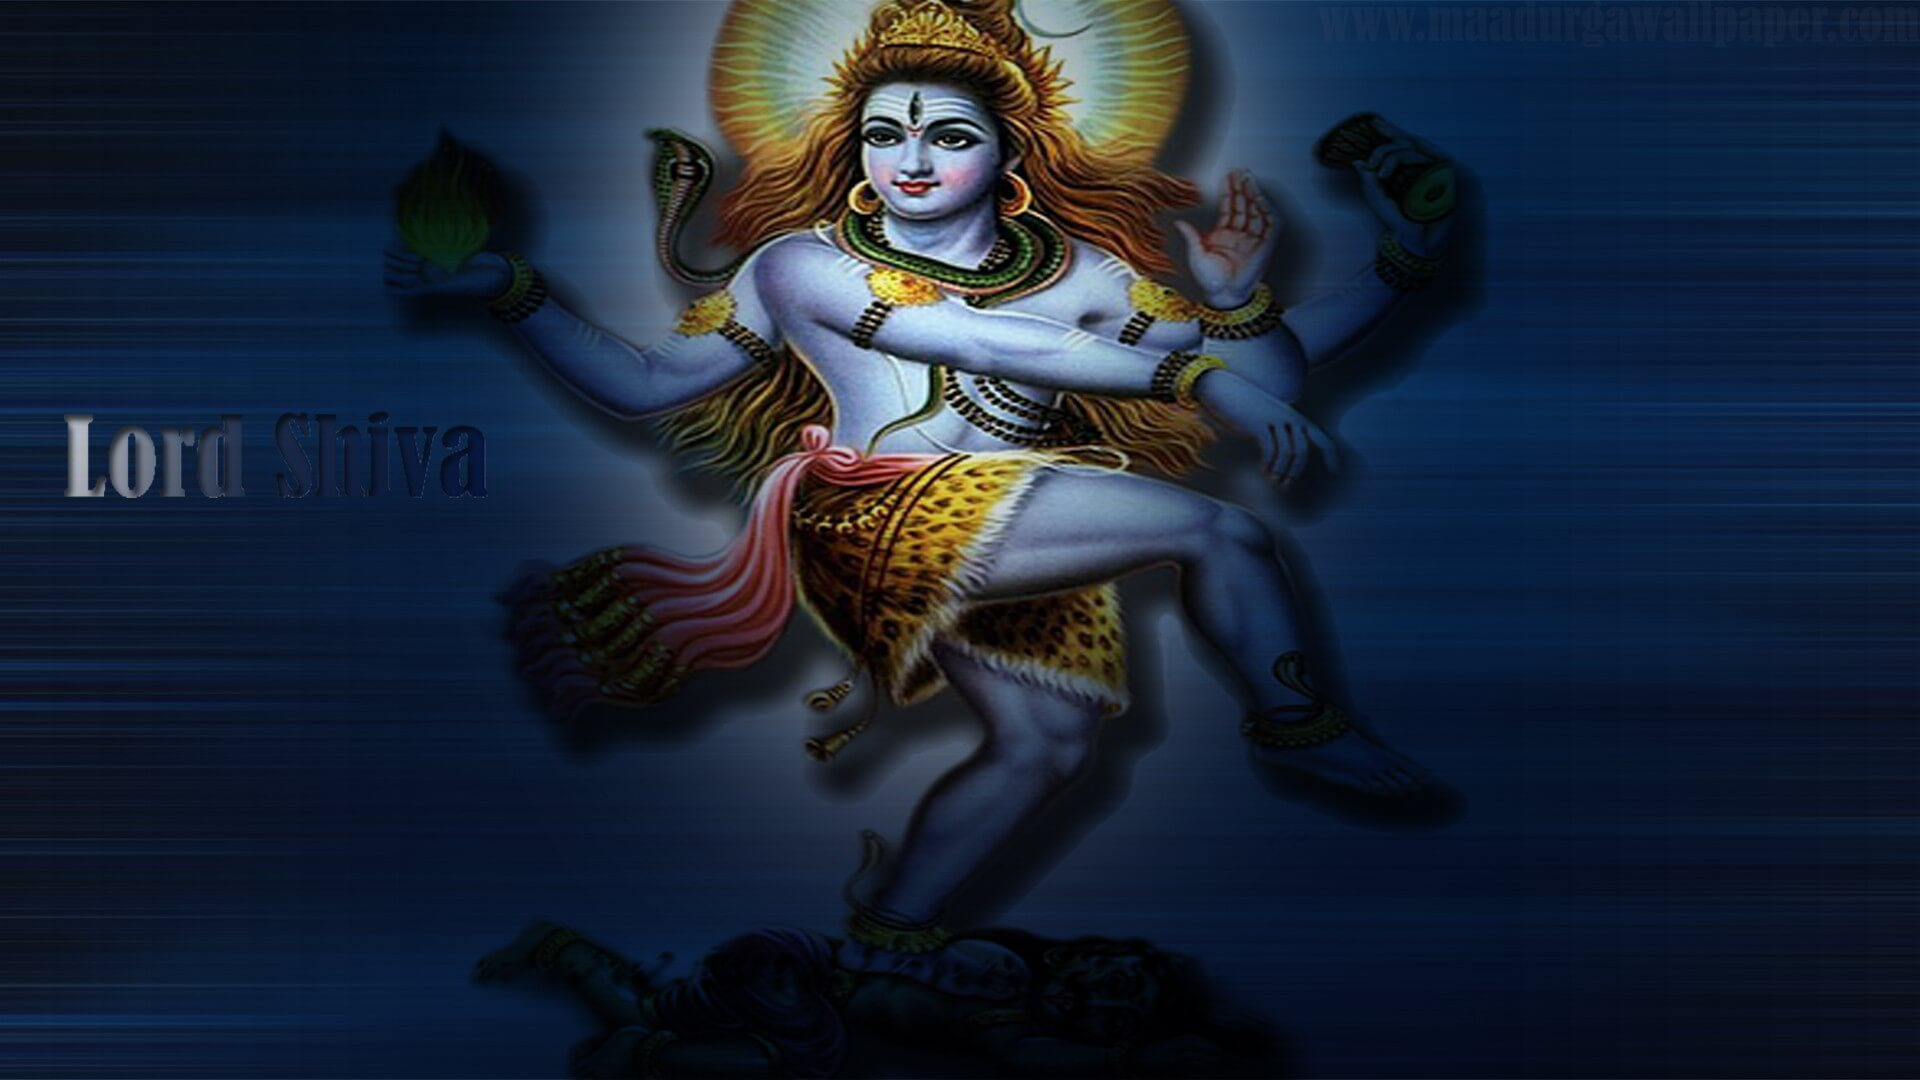 Lord Shiva Images भगवान् शिवजी के चित्र (Large Size) (9)